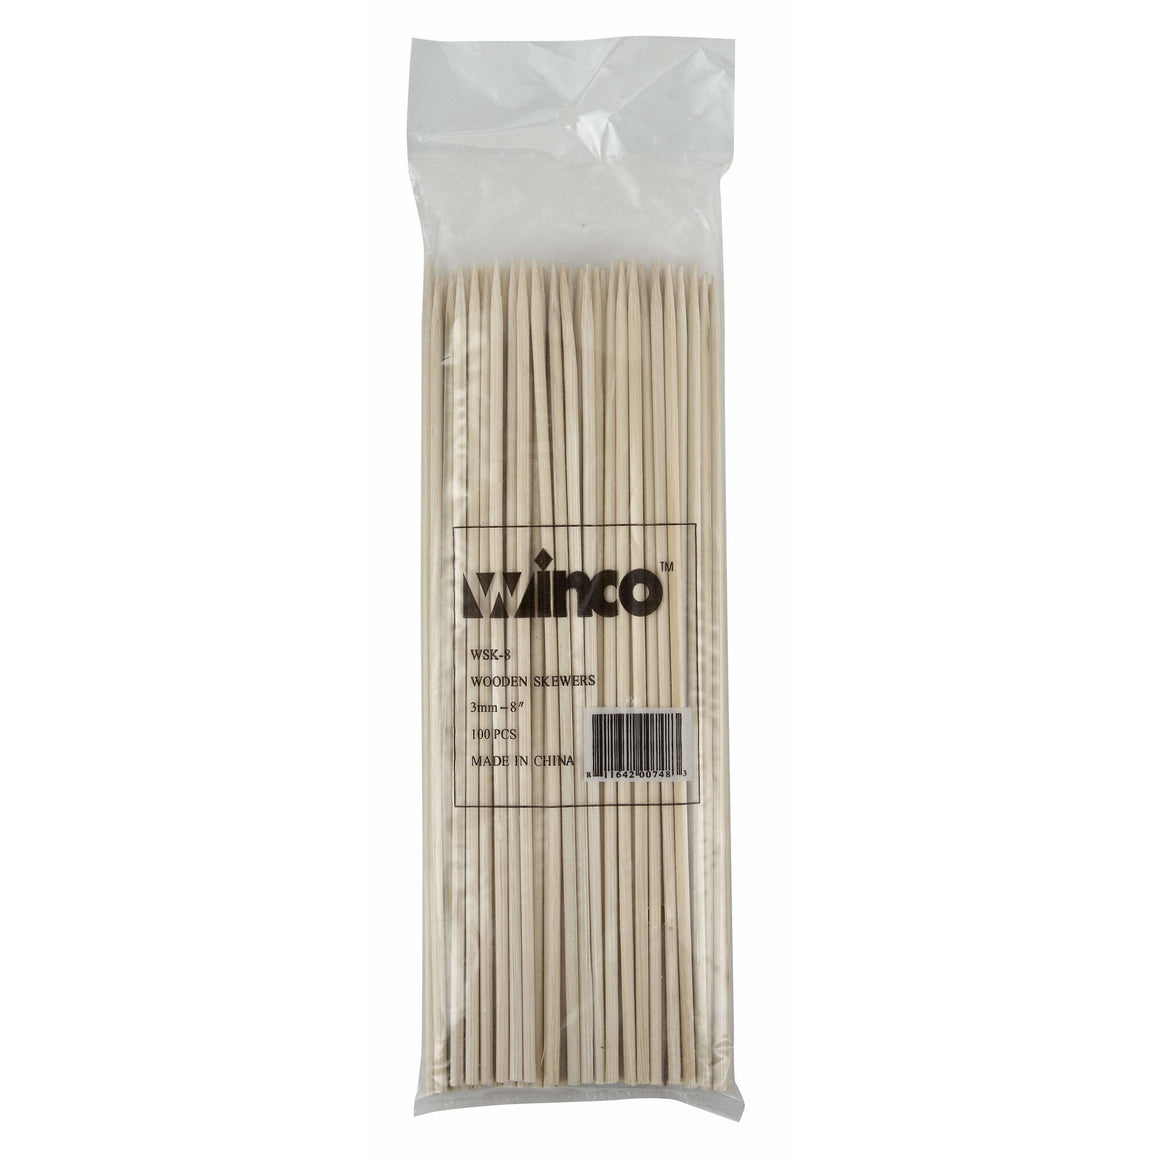 "Winco - WSK-08 - 8"" Bamboo Skewers, 100/bag - Kitchen Utensils"